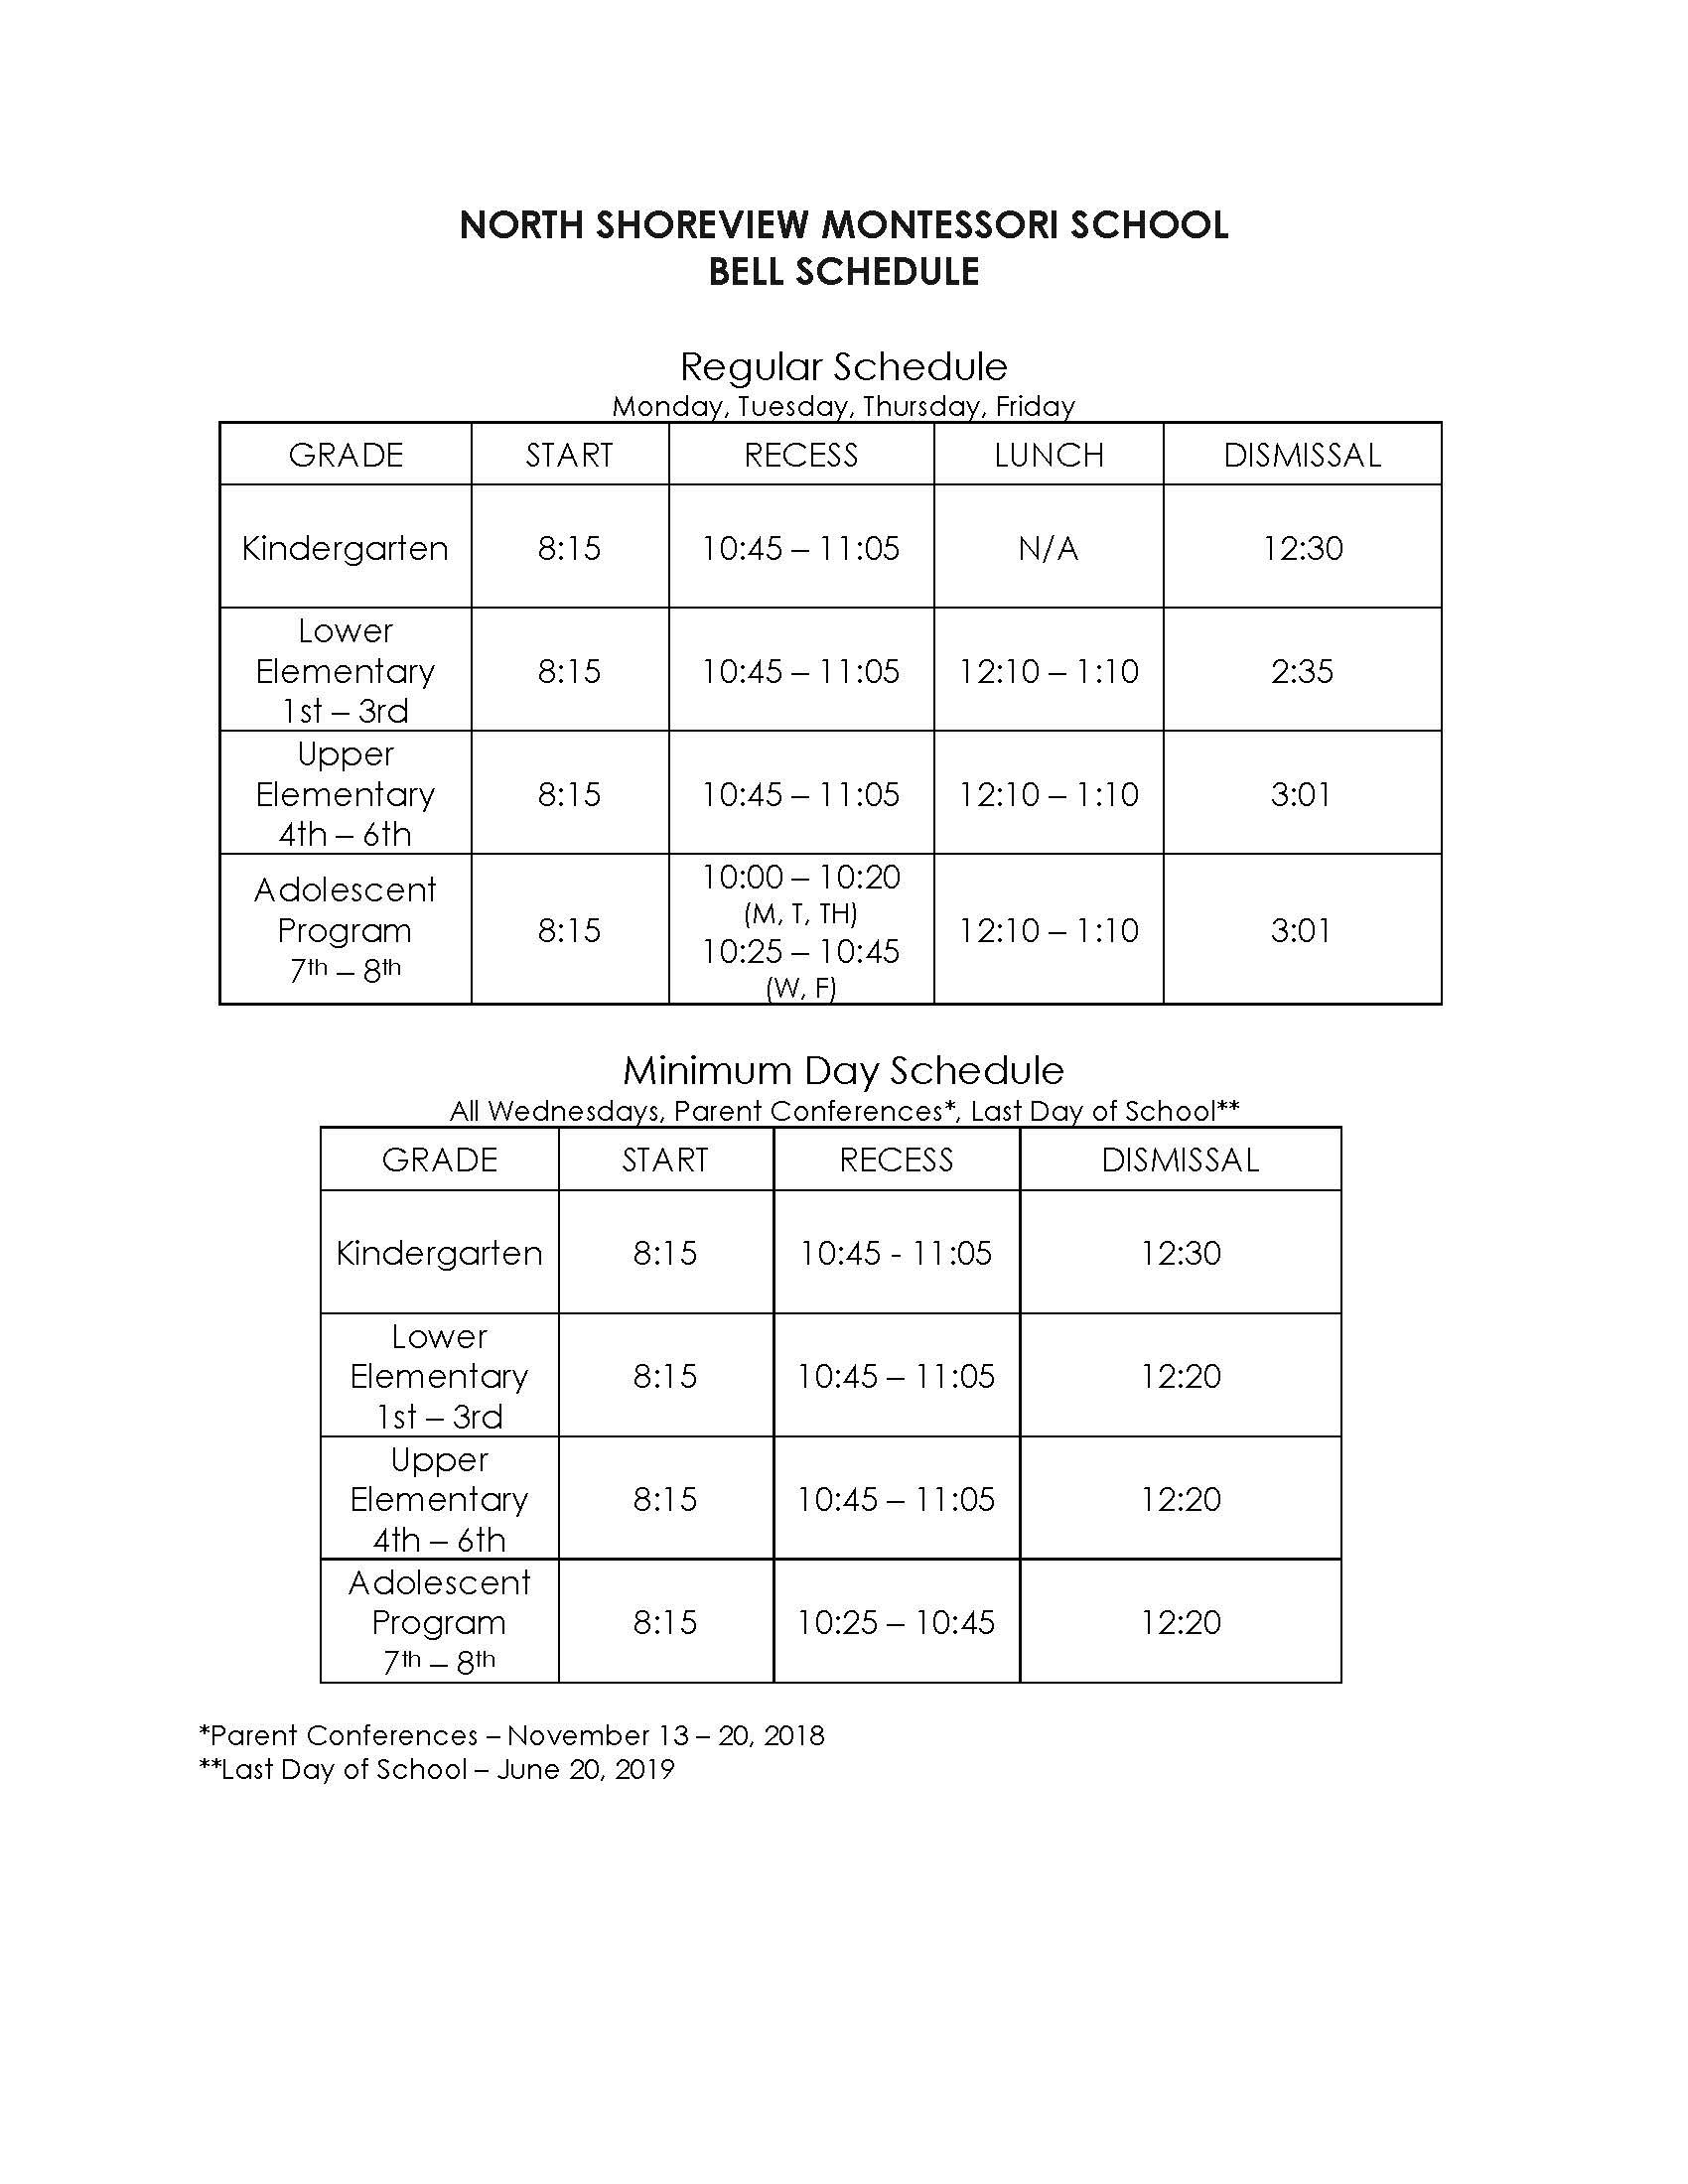 North Shoreview Montessori Bell Schedule 2018-19